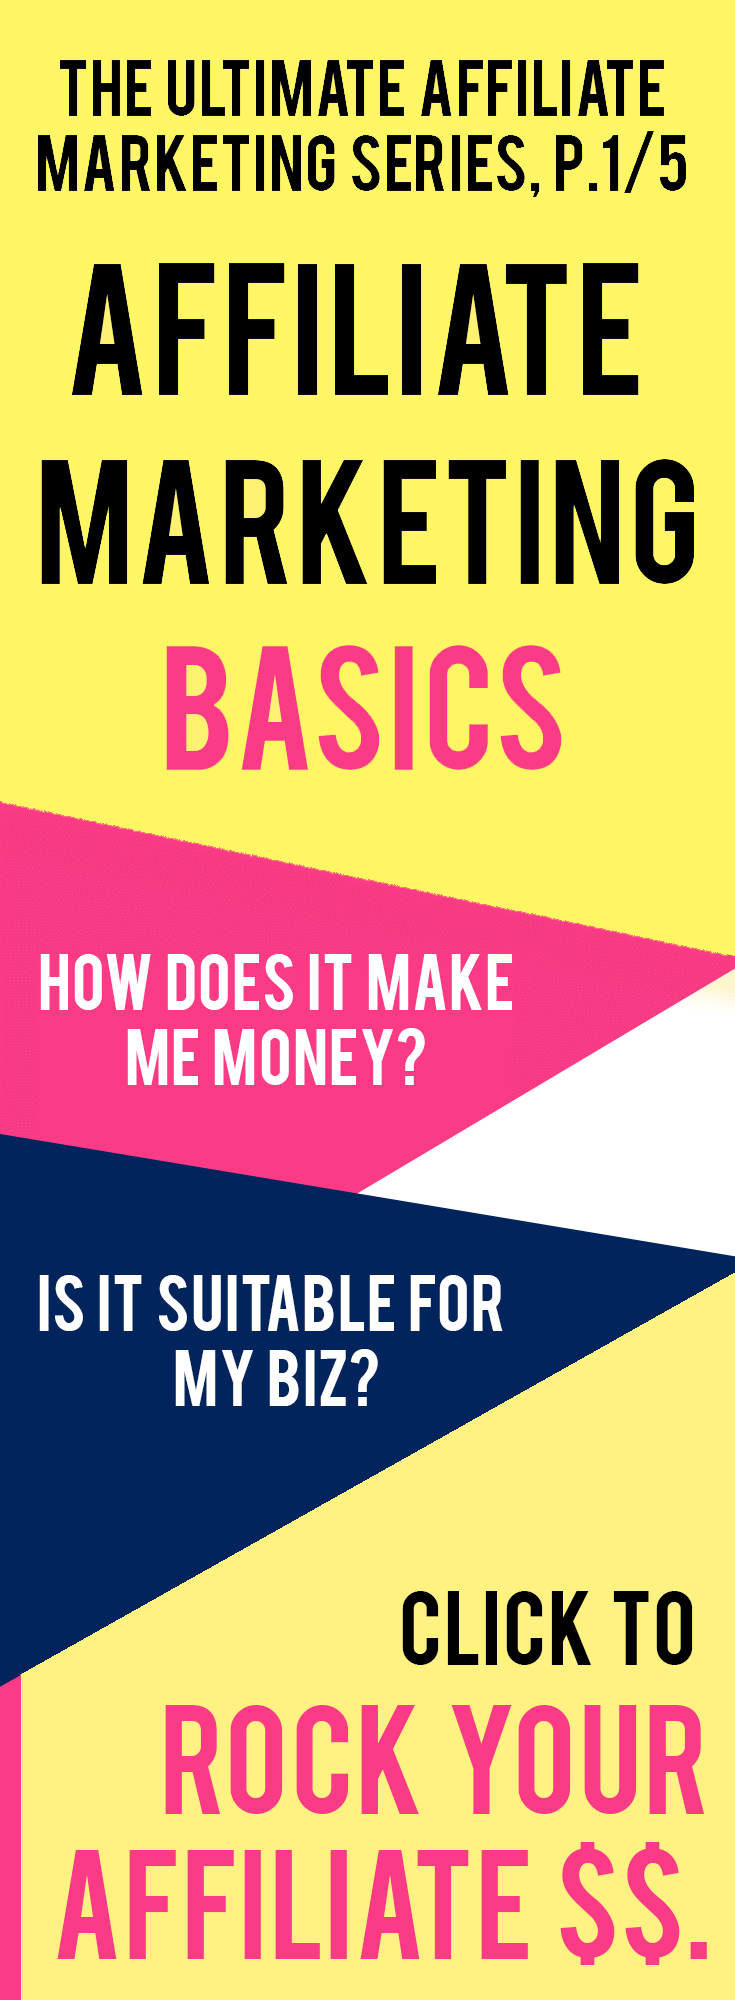 Affiliate Marketing Basics 101: What is affiliate marketing and how does it work for your website and business? + Tips on how to make money with affiliate products in this 4-part affiliate marketing series!